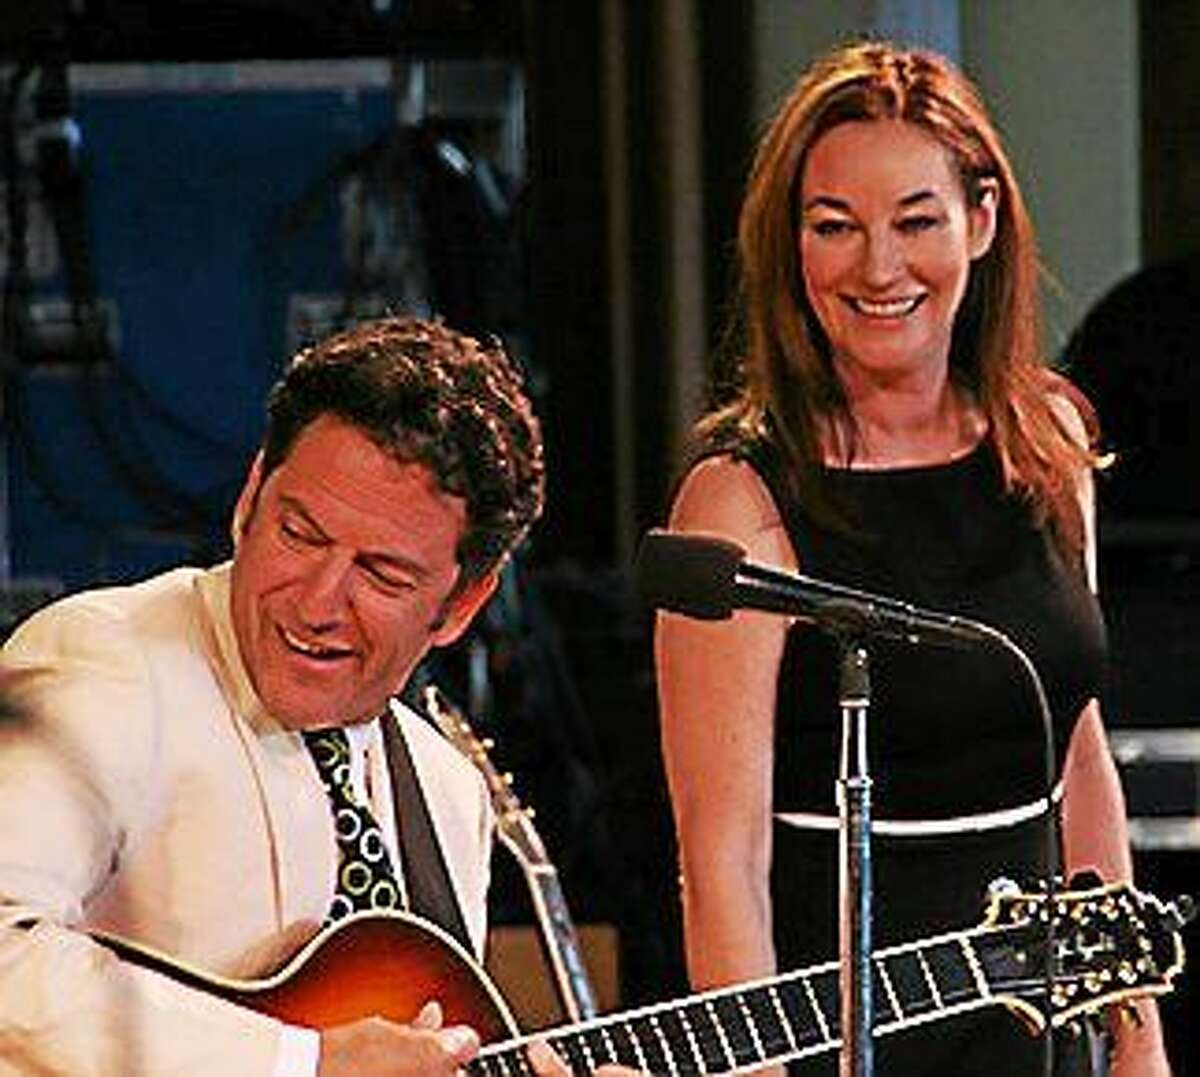 Submitted photo - New England Arts & Entertainment On Friday September 19, the Fall Jazz Series from New England Arts & Entertainment kicks off at the Palace Theater Poli Club with John Pizzarelli & Jessica Molaskey.